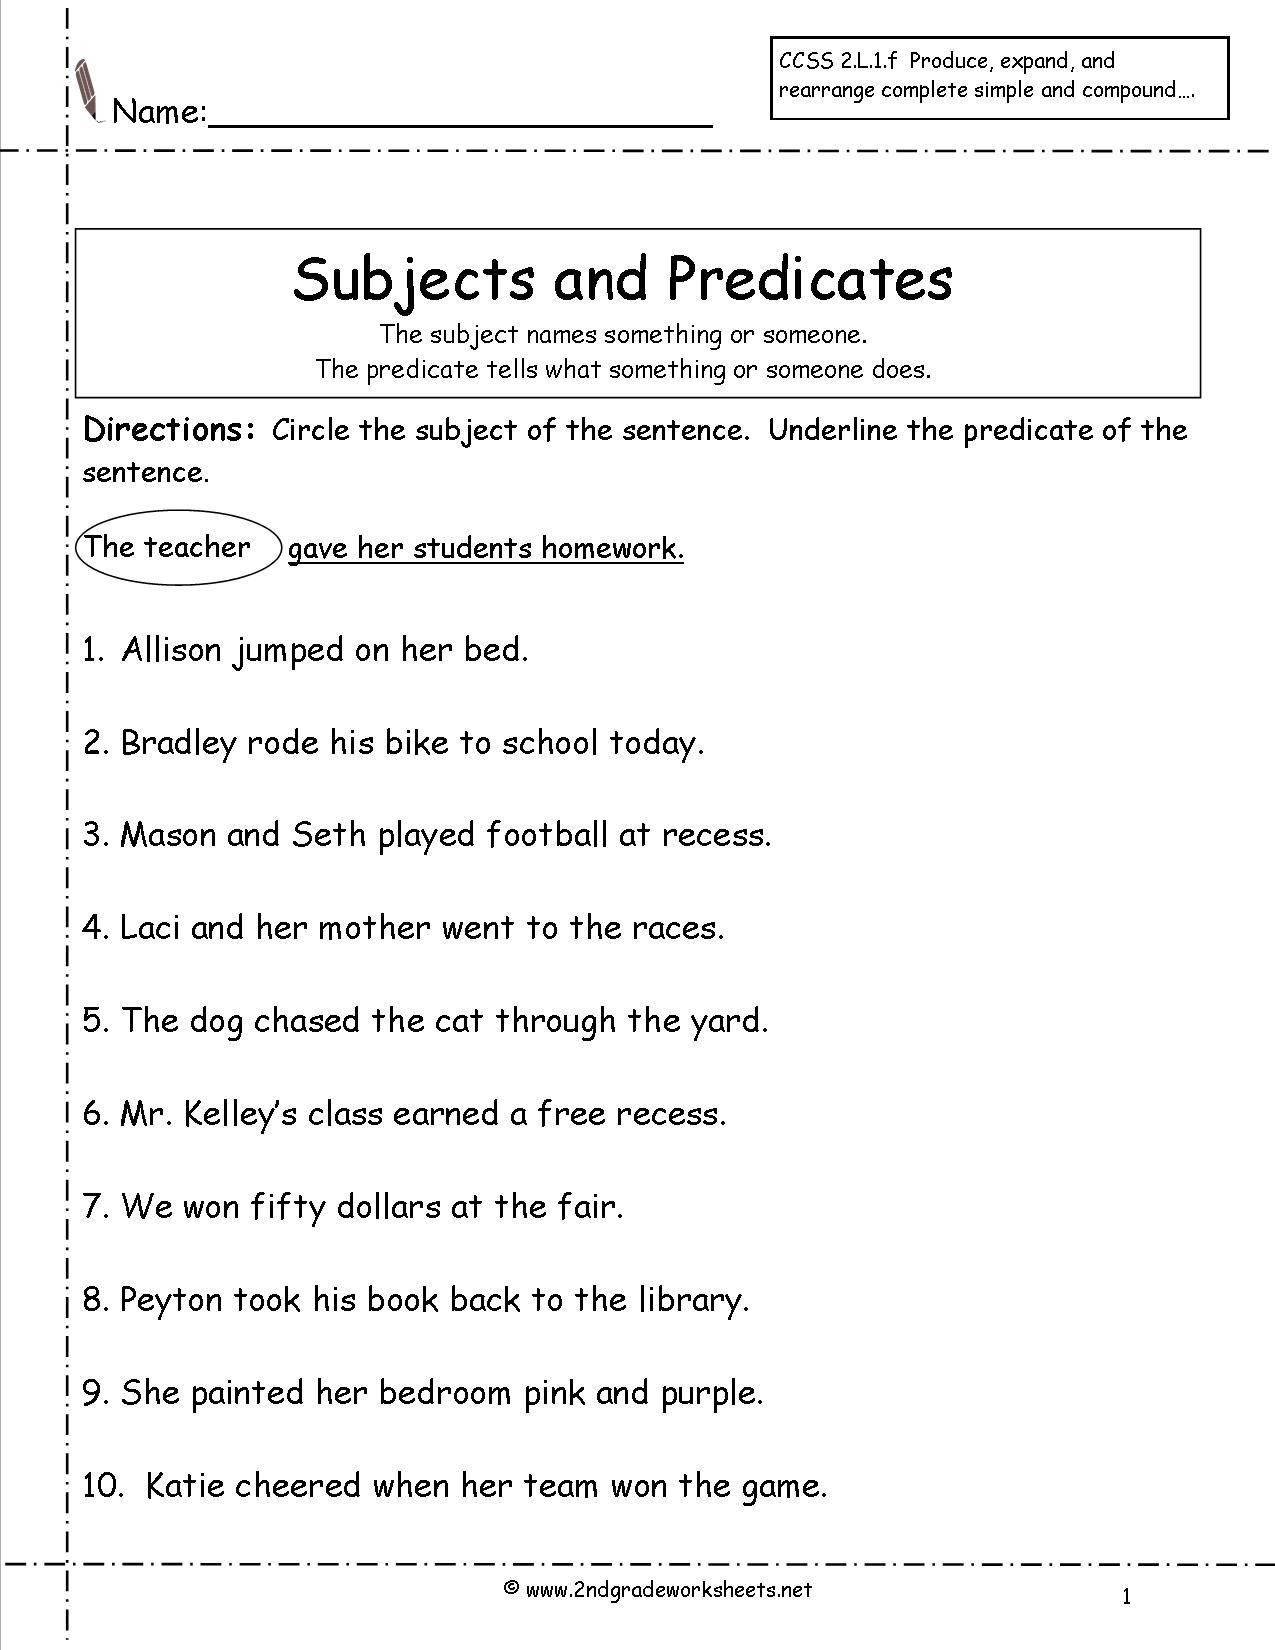 Complete Sentences Worksheets 4th Grade Subject Predicate Worksheets 2nd Grade Google Search